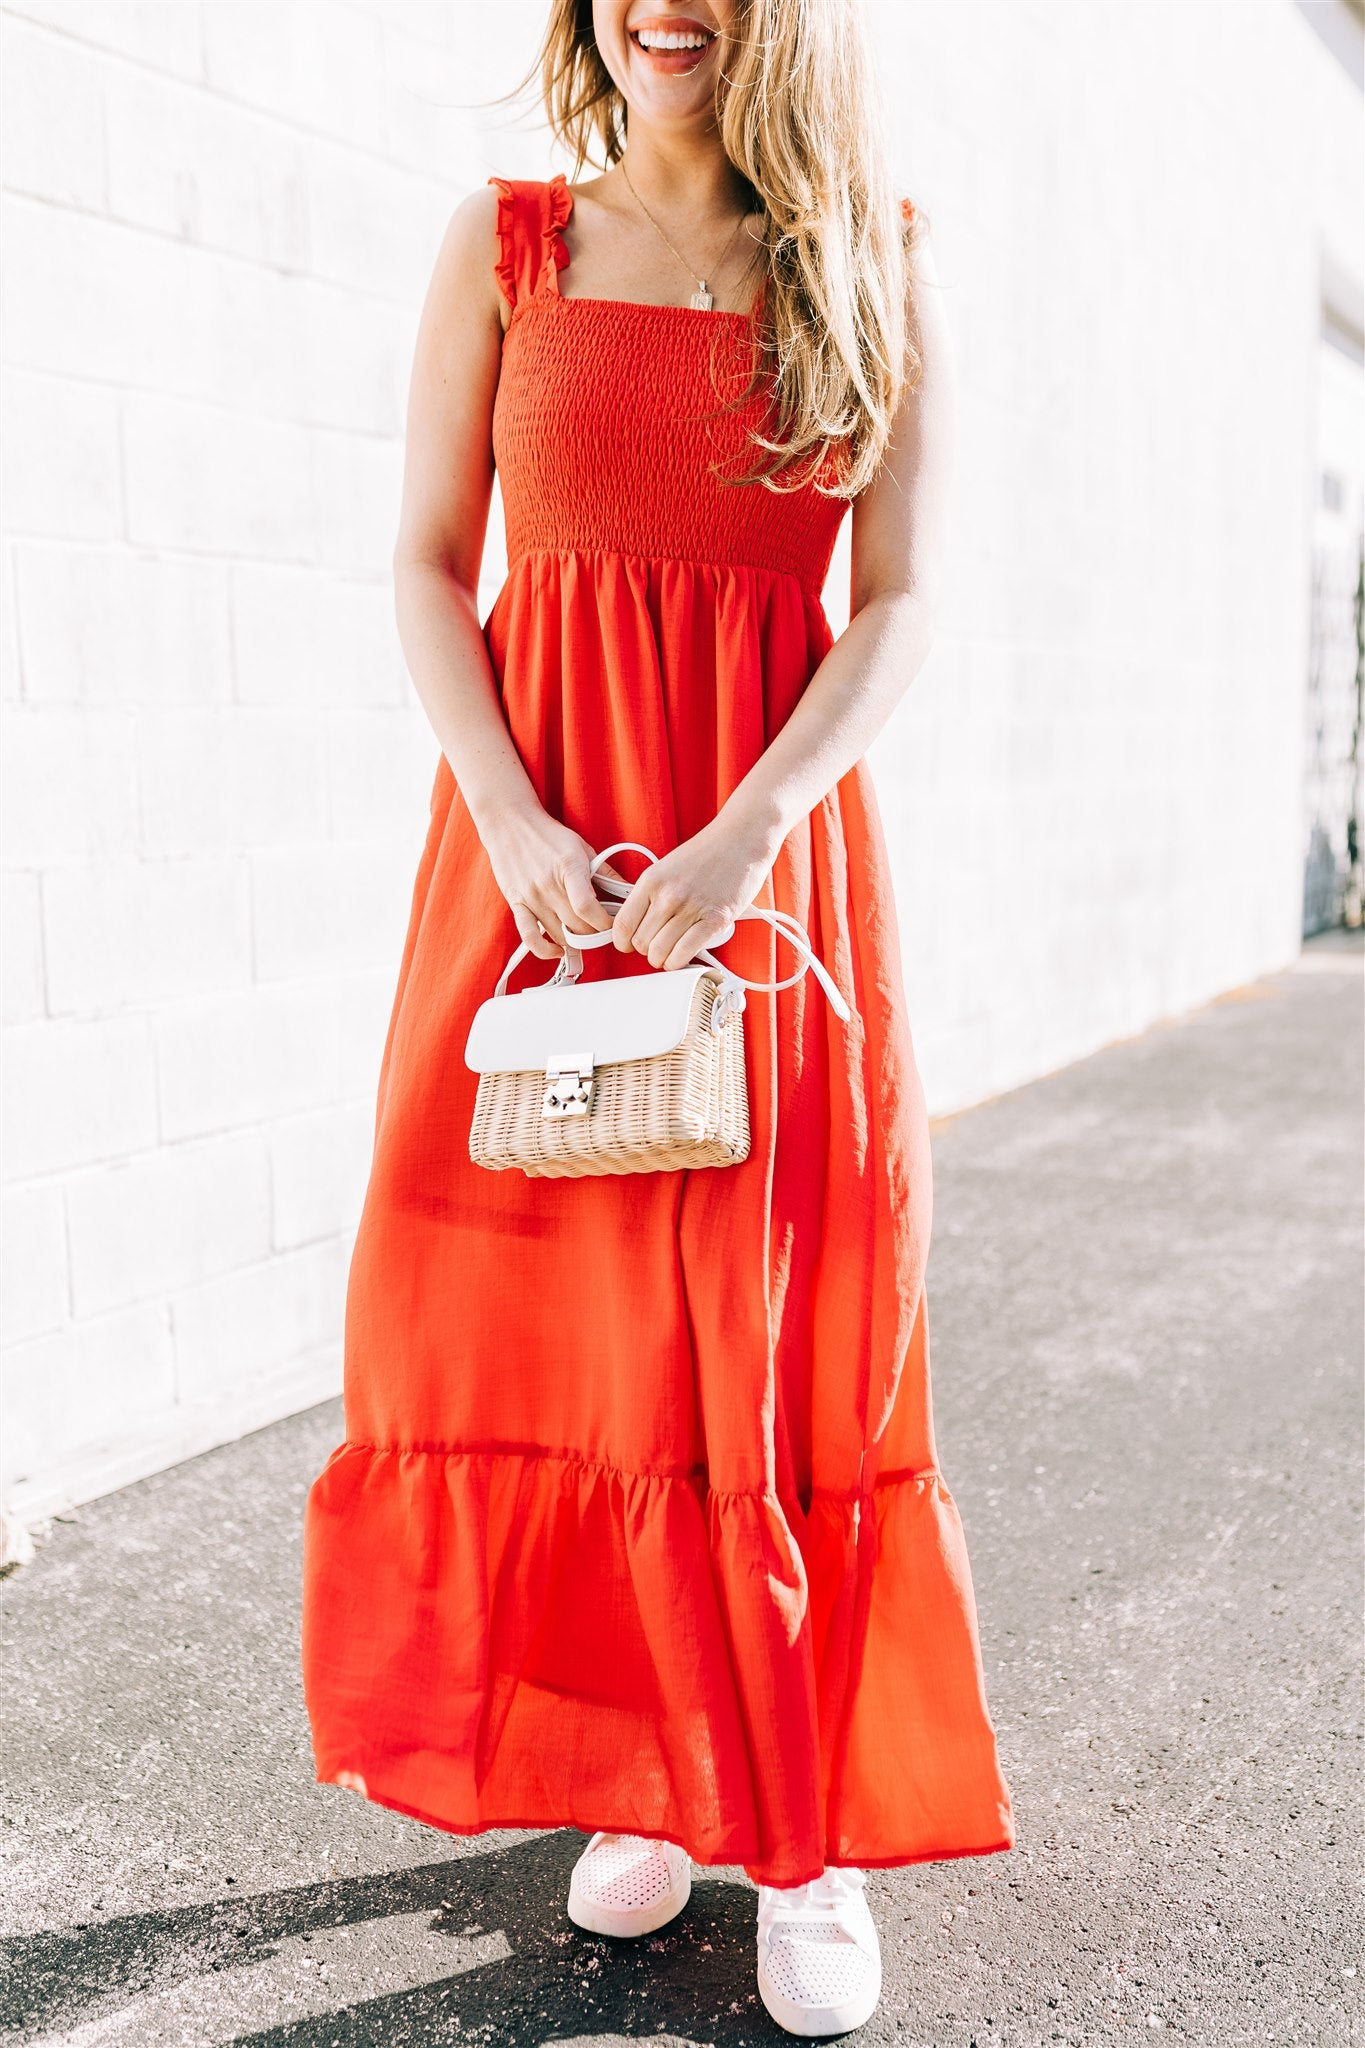 Meet You There Dress - Red